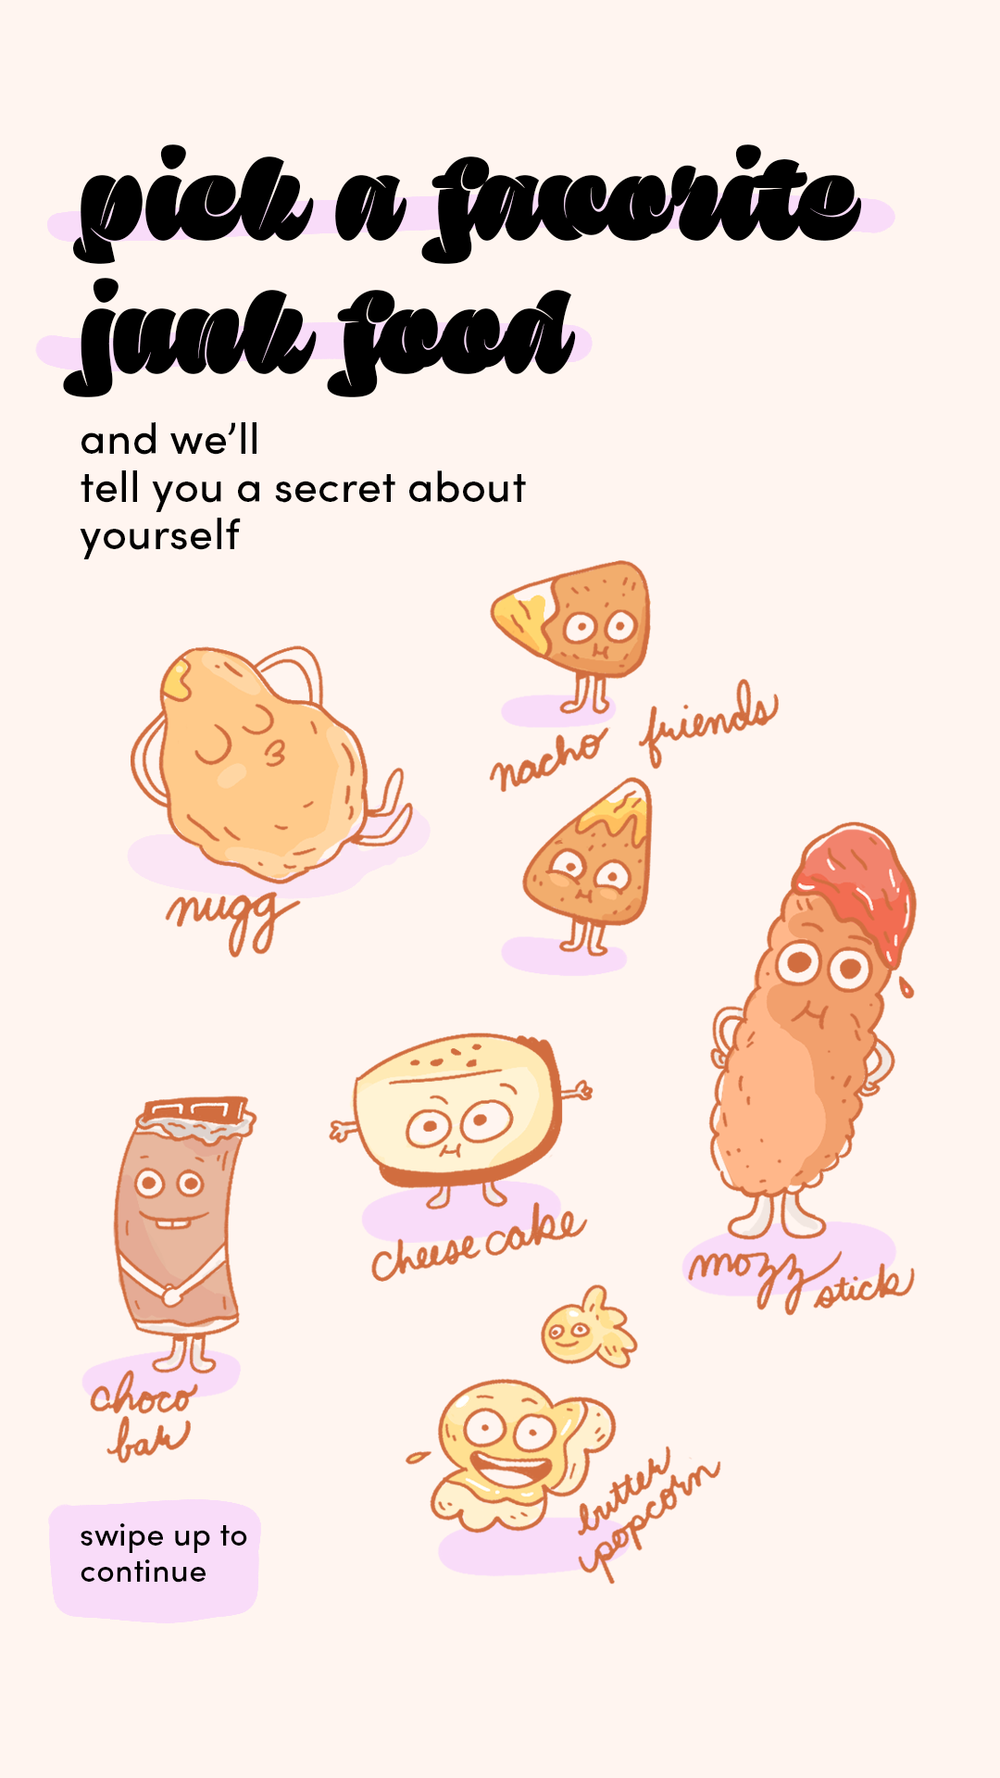 STSF06612 junk food secrets.png